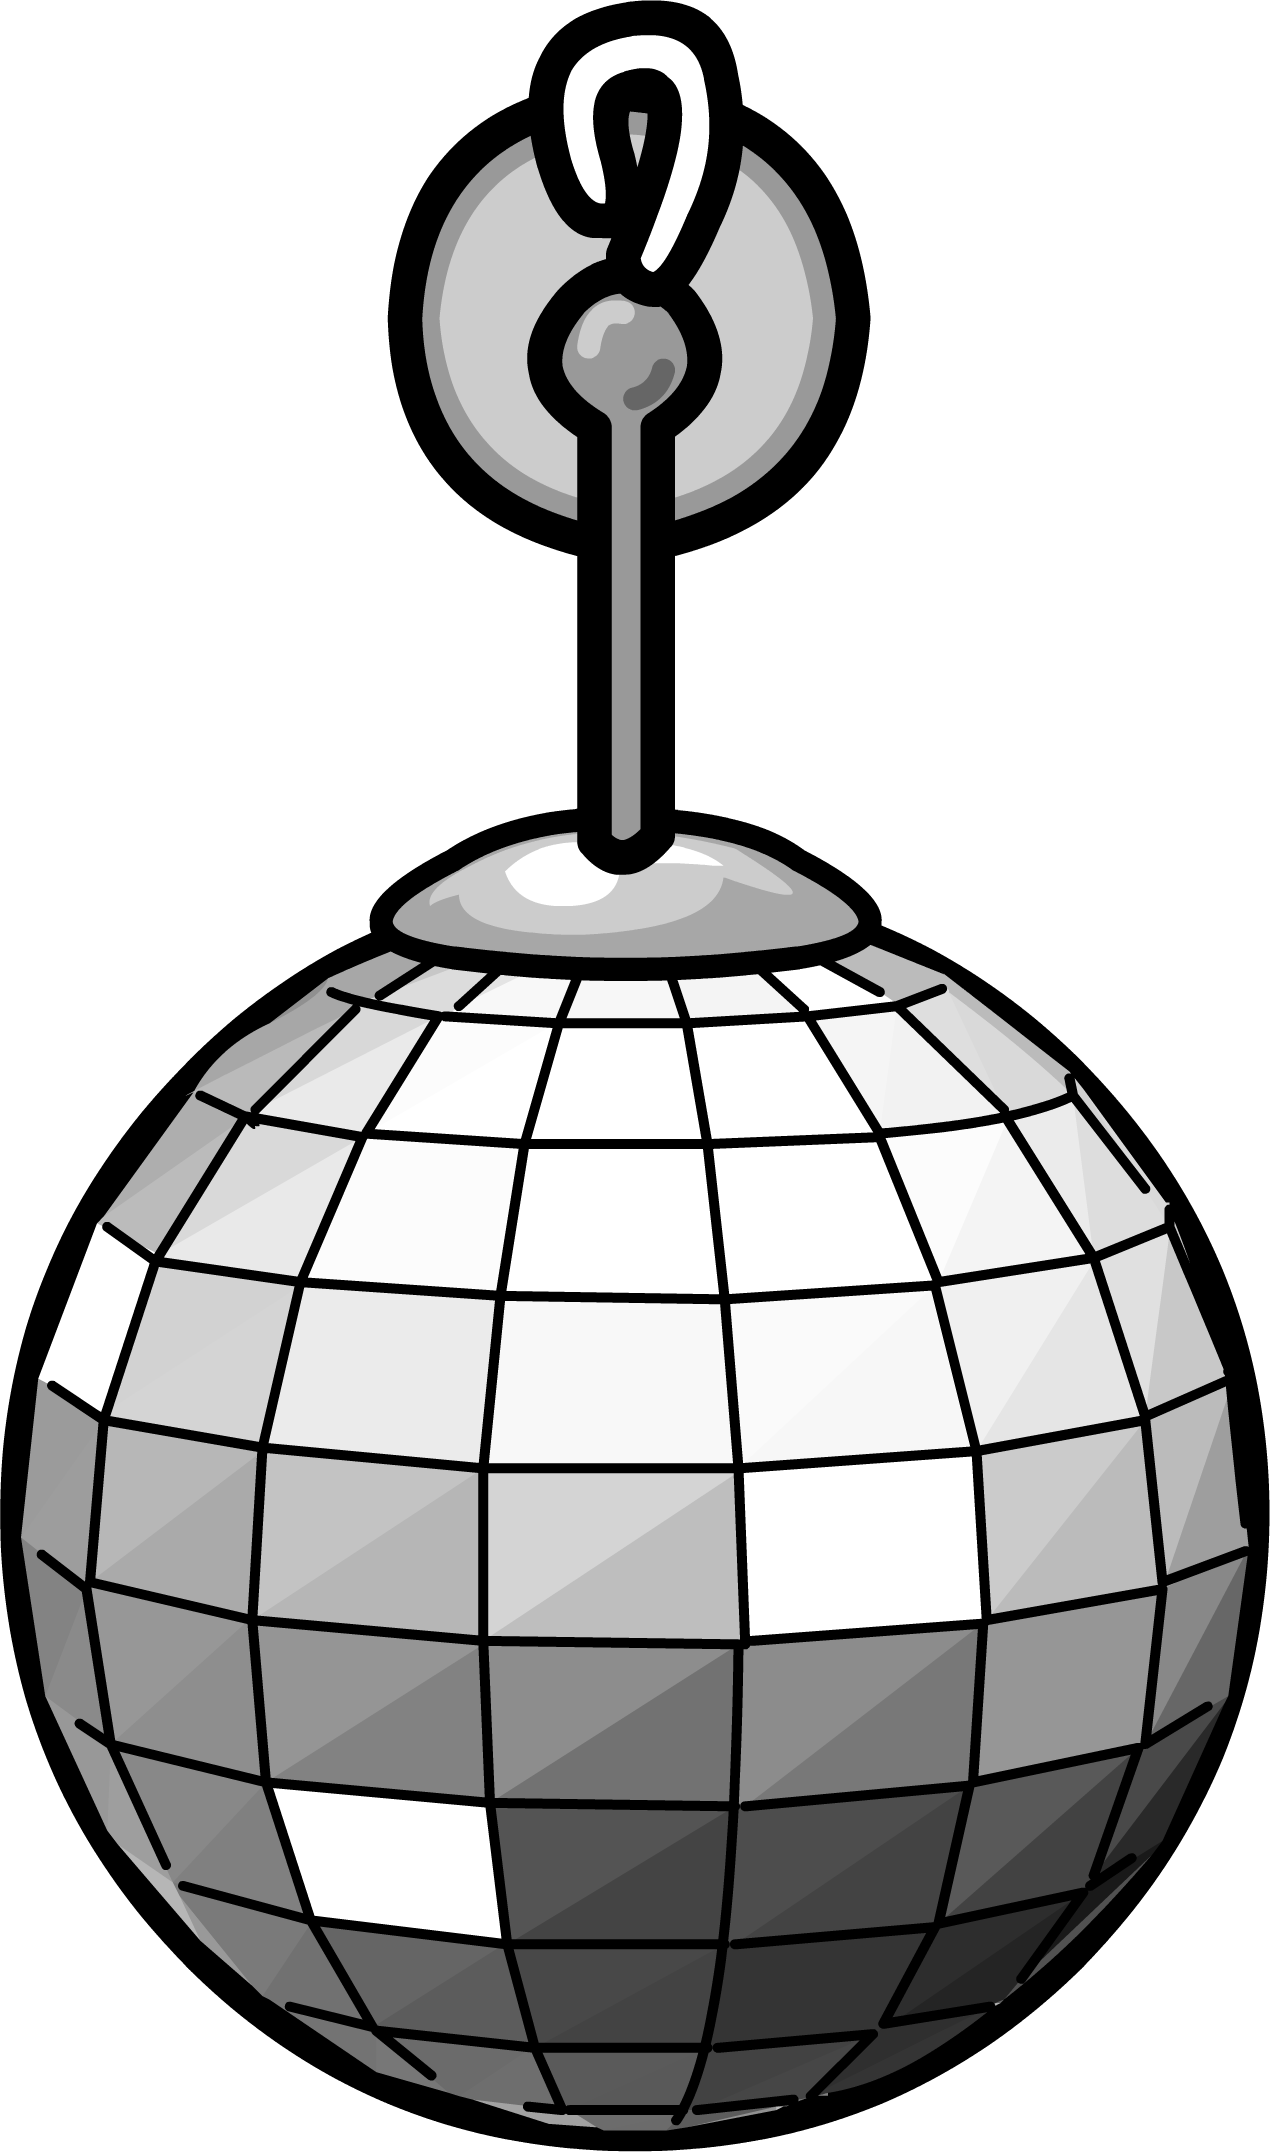 Image ball sprite png. Club clipart disco club